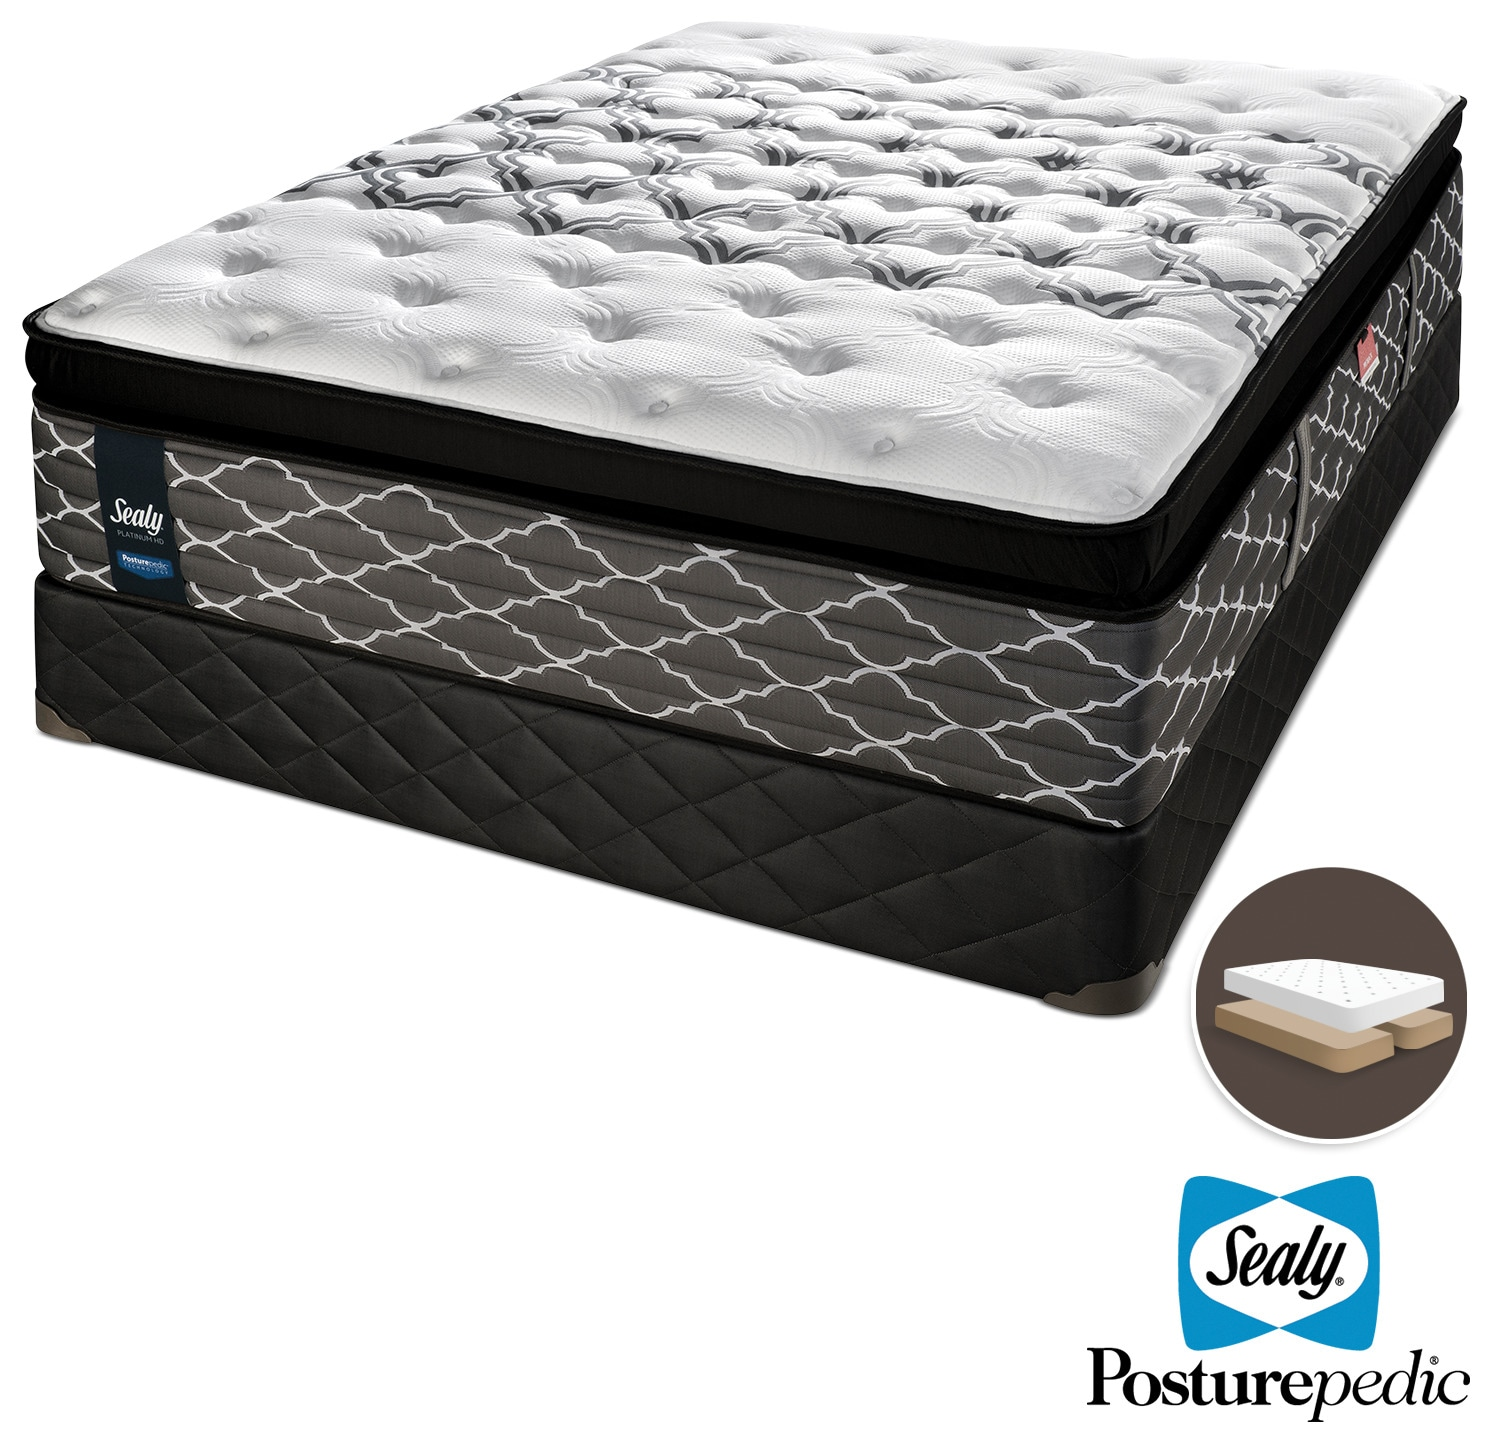 Sealy Endless Night Hybrid Cushion Firm King Mattress and Split Boxspring Set